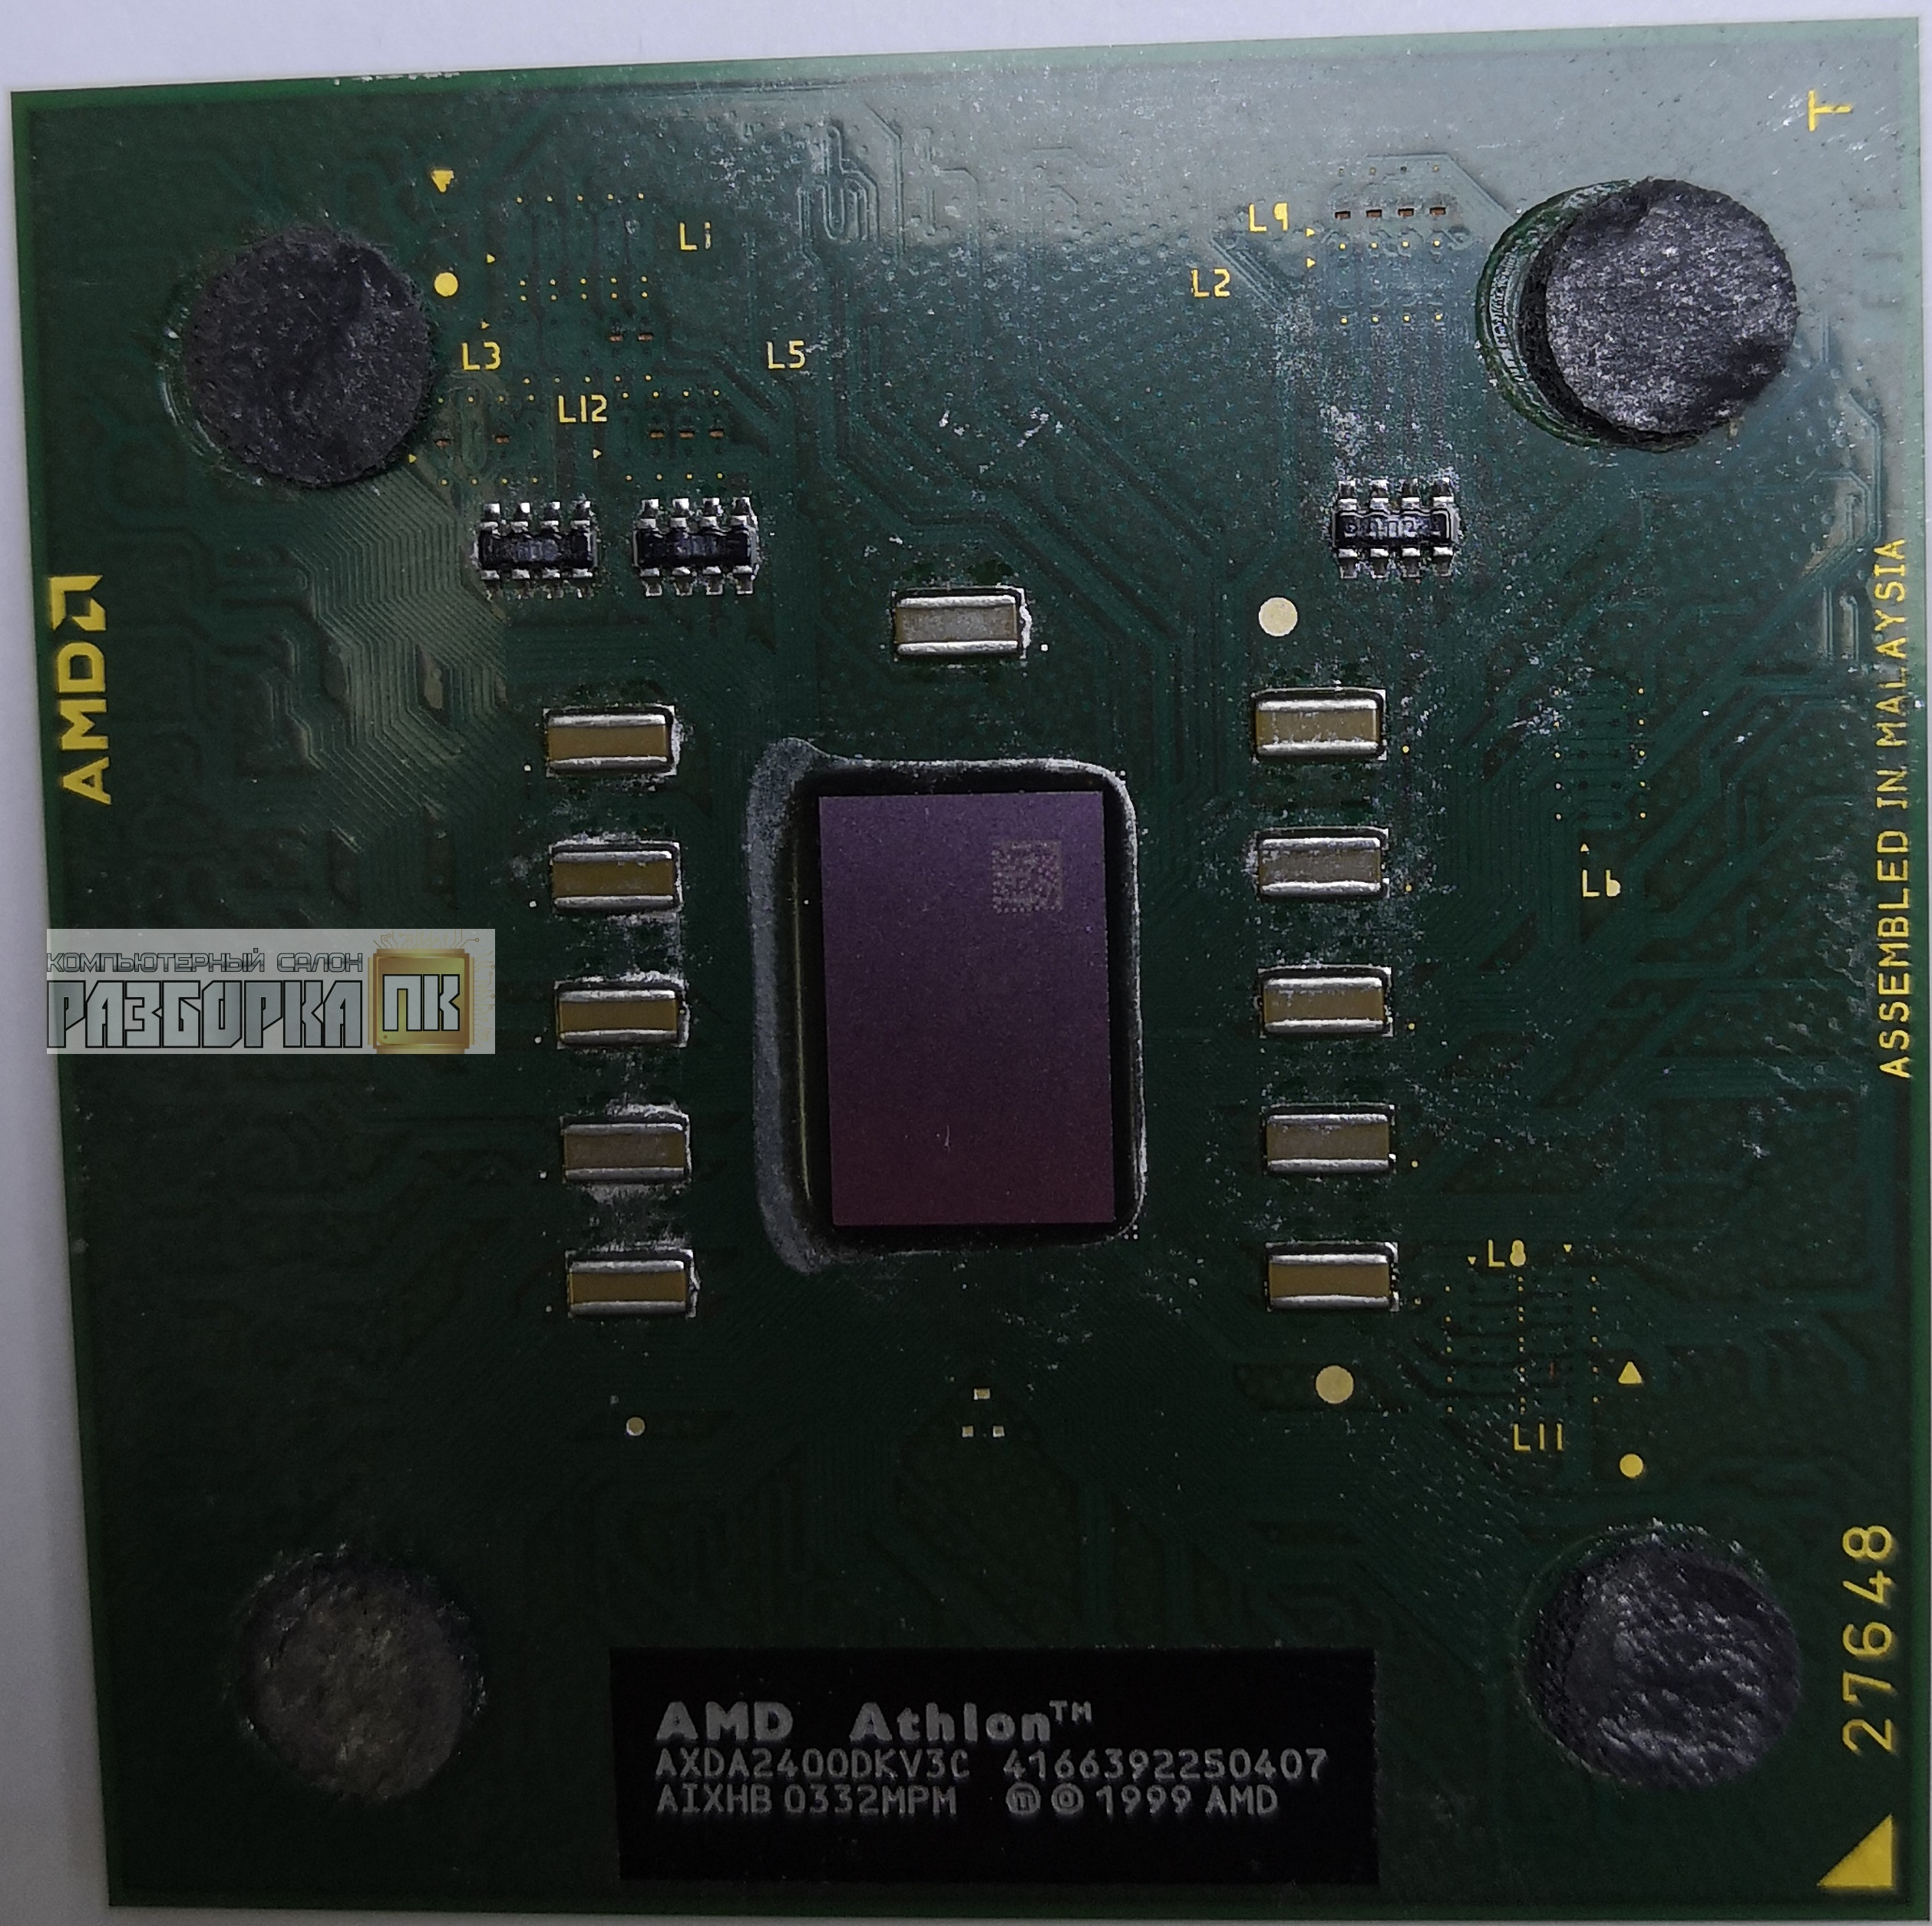 Процессор S462 AMD Athlon XP 2400+ AXDA2400DKV3C